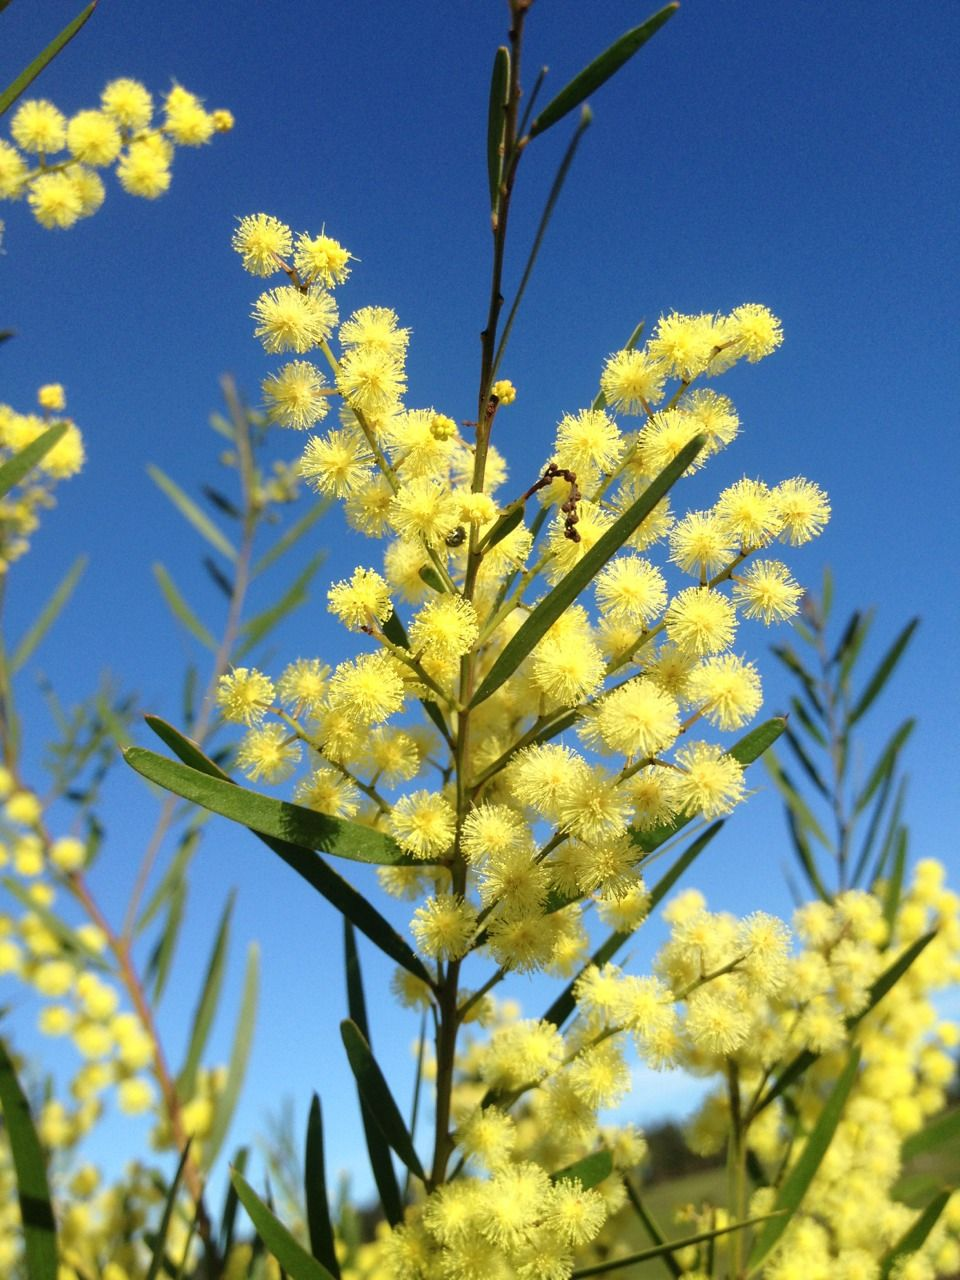 These fluffy Wattle flowers almost look like yellow snow